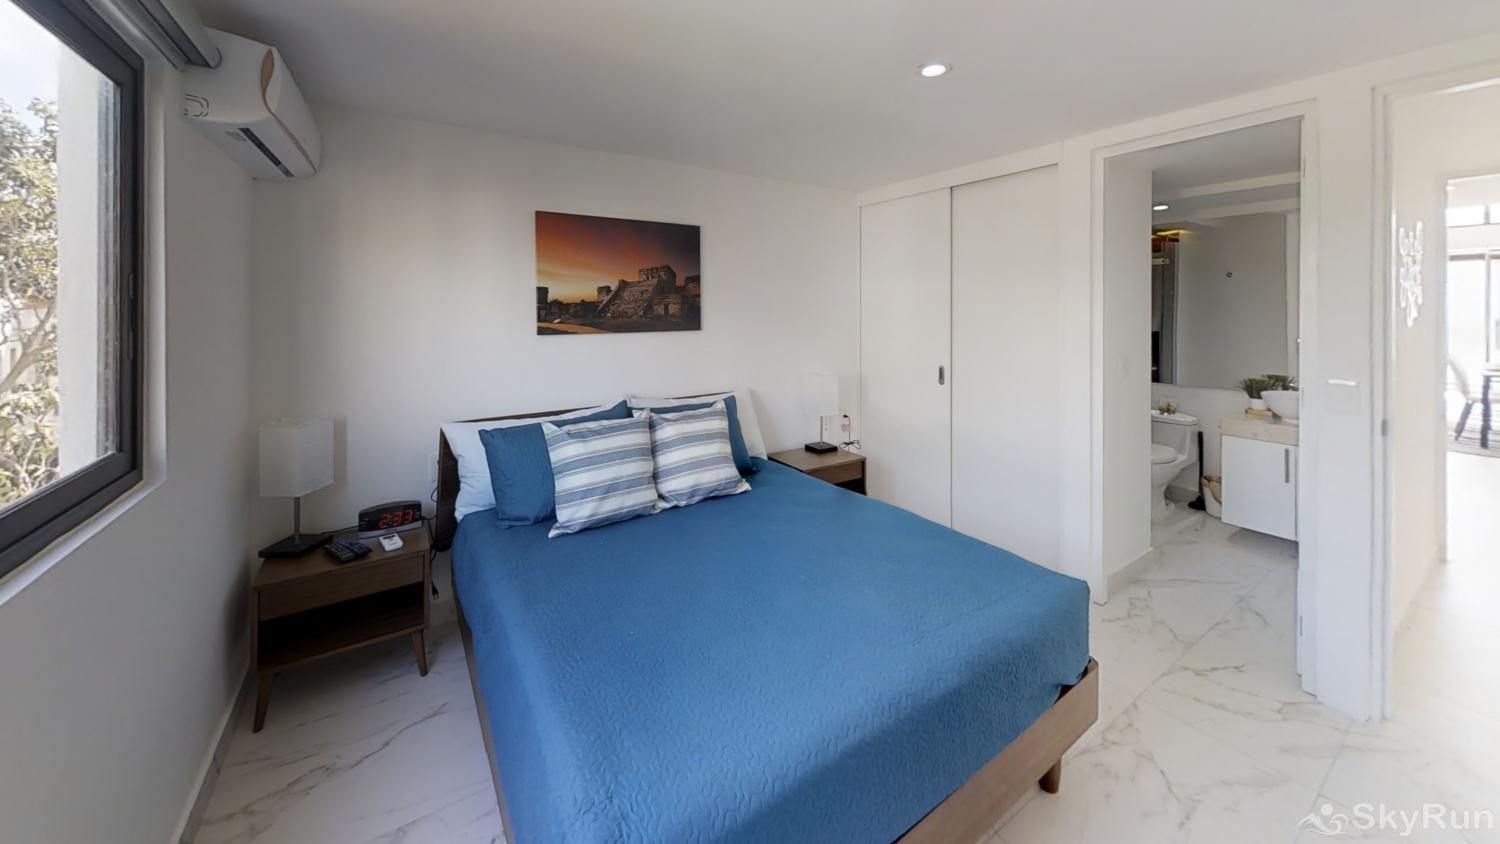 Stylish Beach Condo Steps from Beach 2BR Outdoor Pool, 303 2bd queen bedroom ensuite bathroom